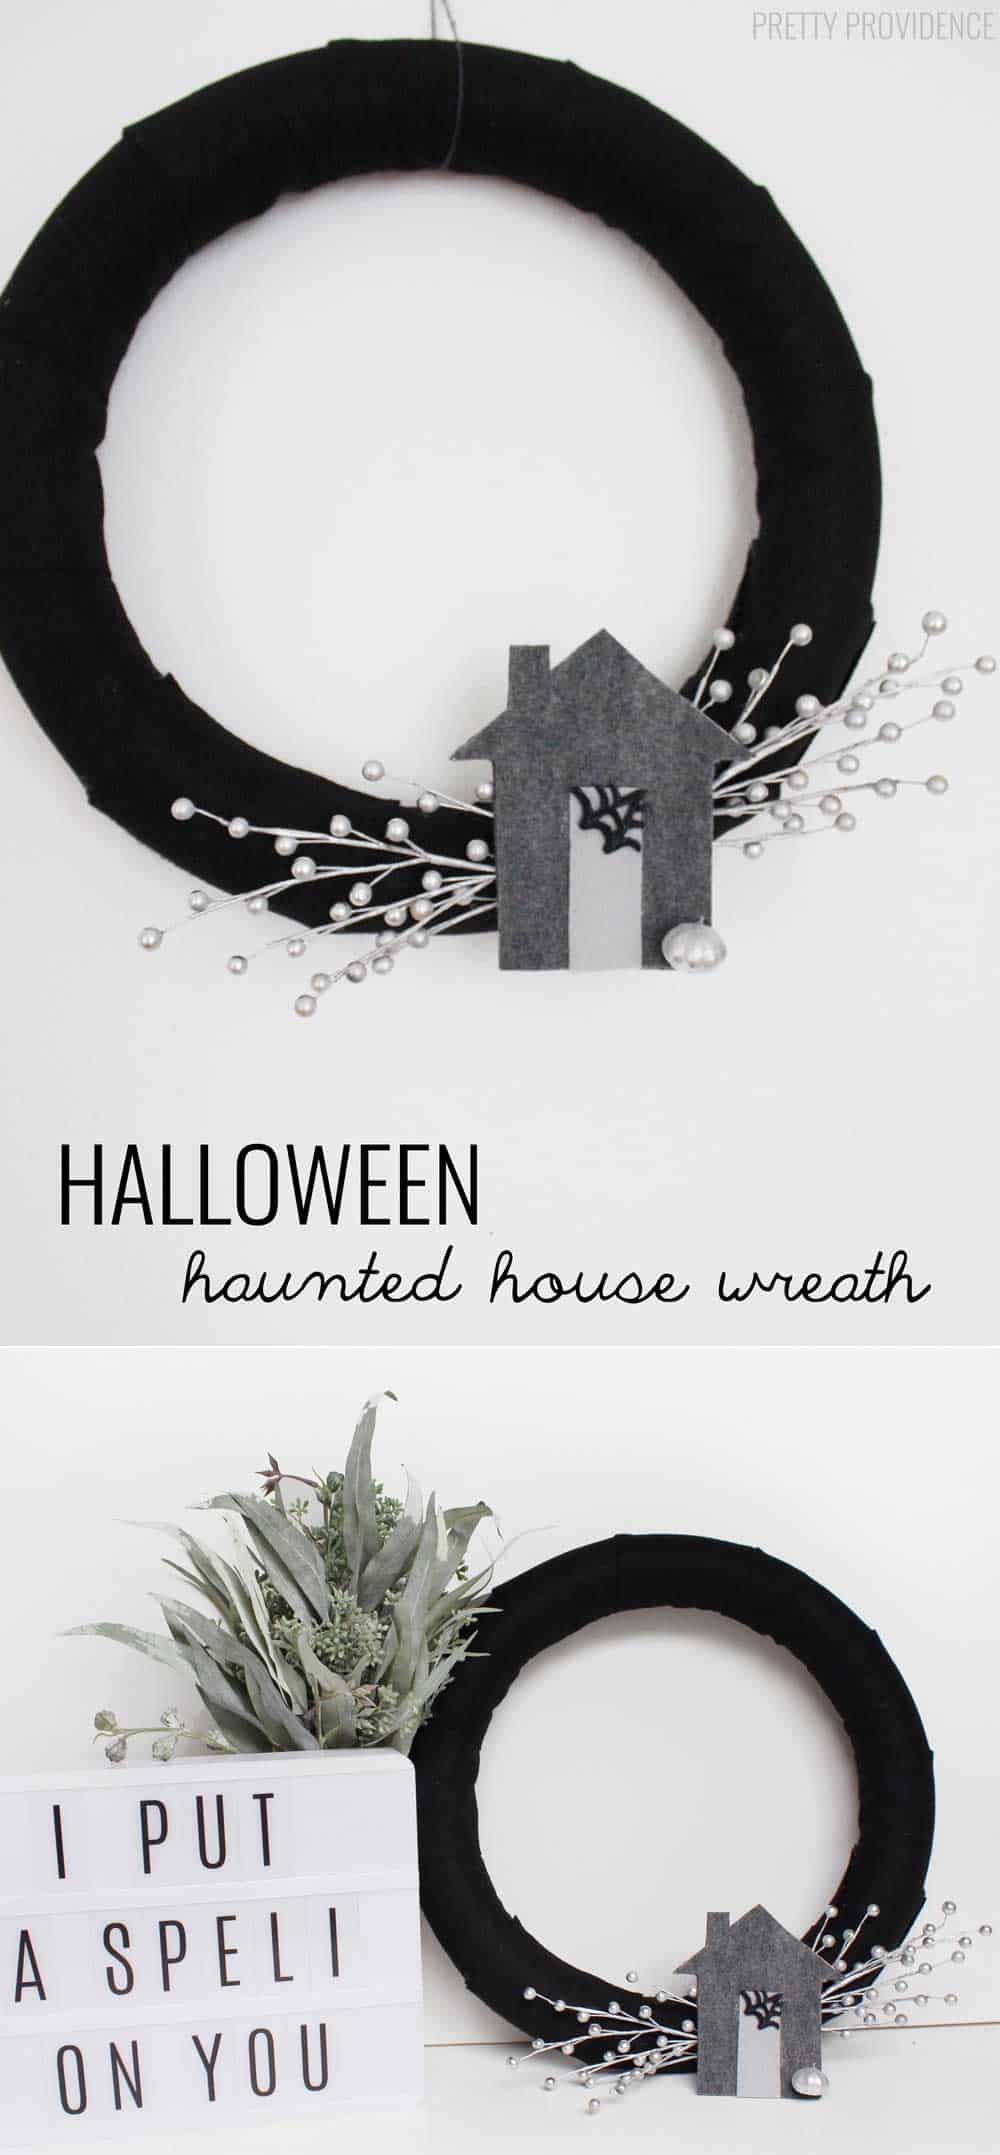 I love this cute, modern haunted house wreath for Halloween!